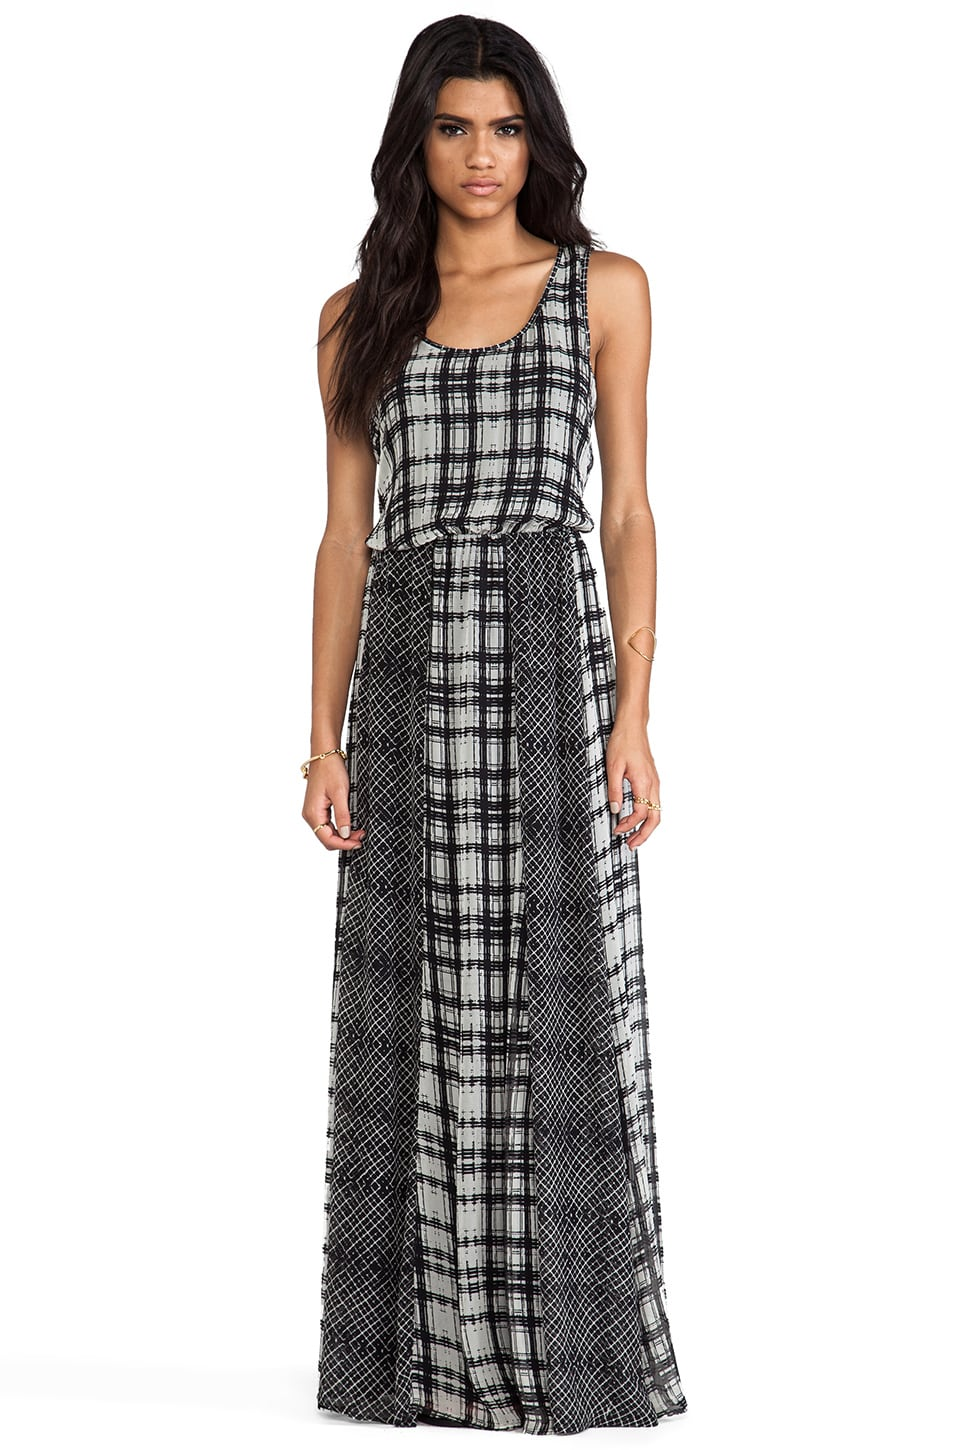 Ella Moss Paige Plaid Maxi Dress in Black